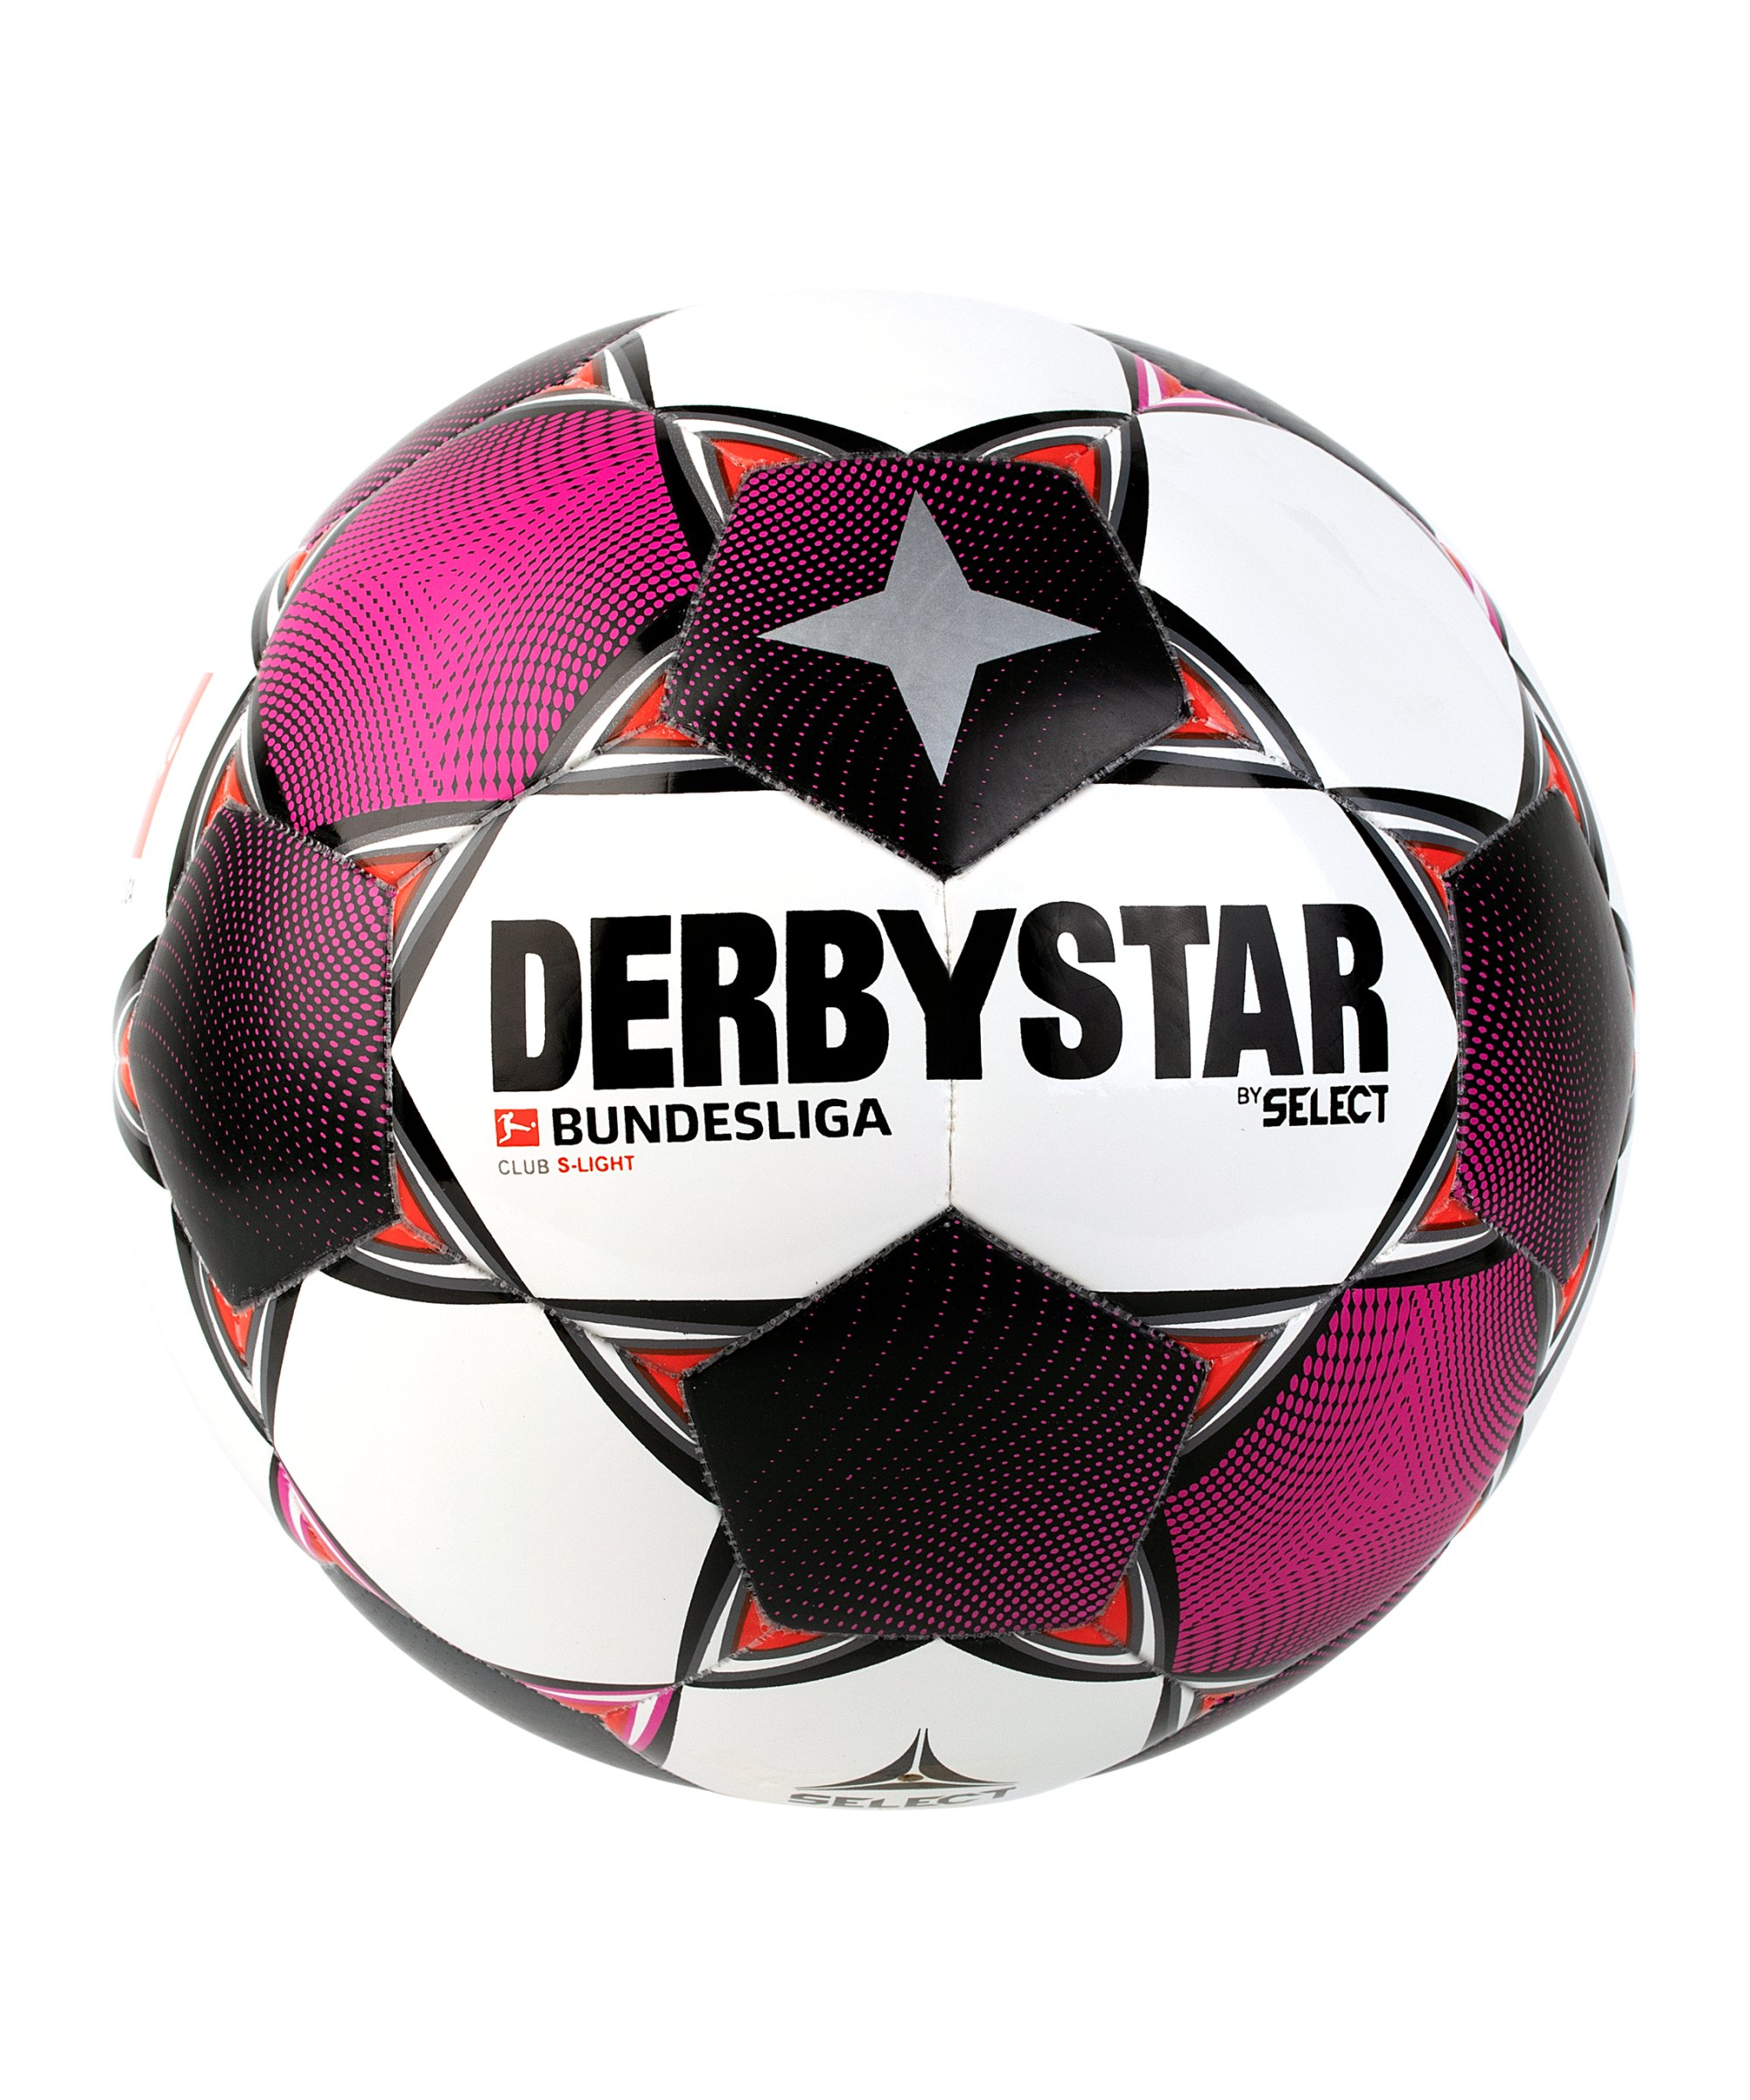 Derbystar Bundesliga Club S-Light Trainingsball Weiss F020 - weiss